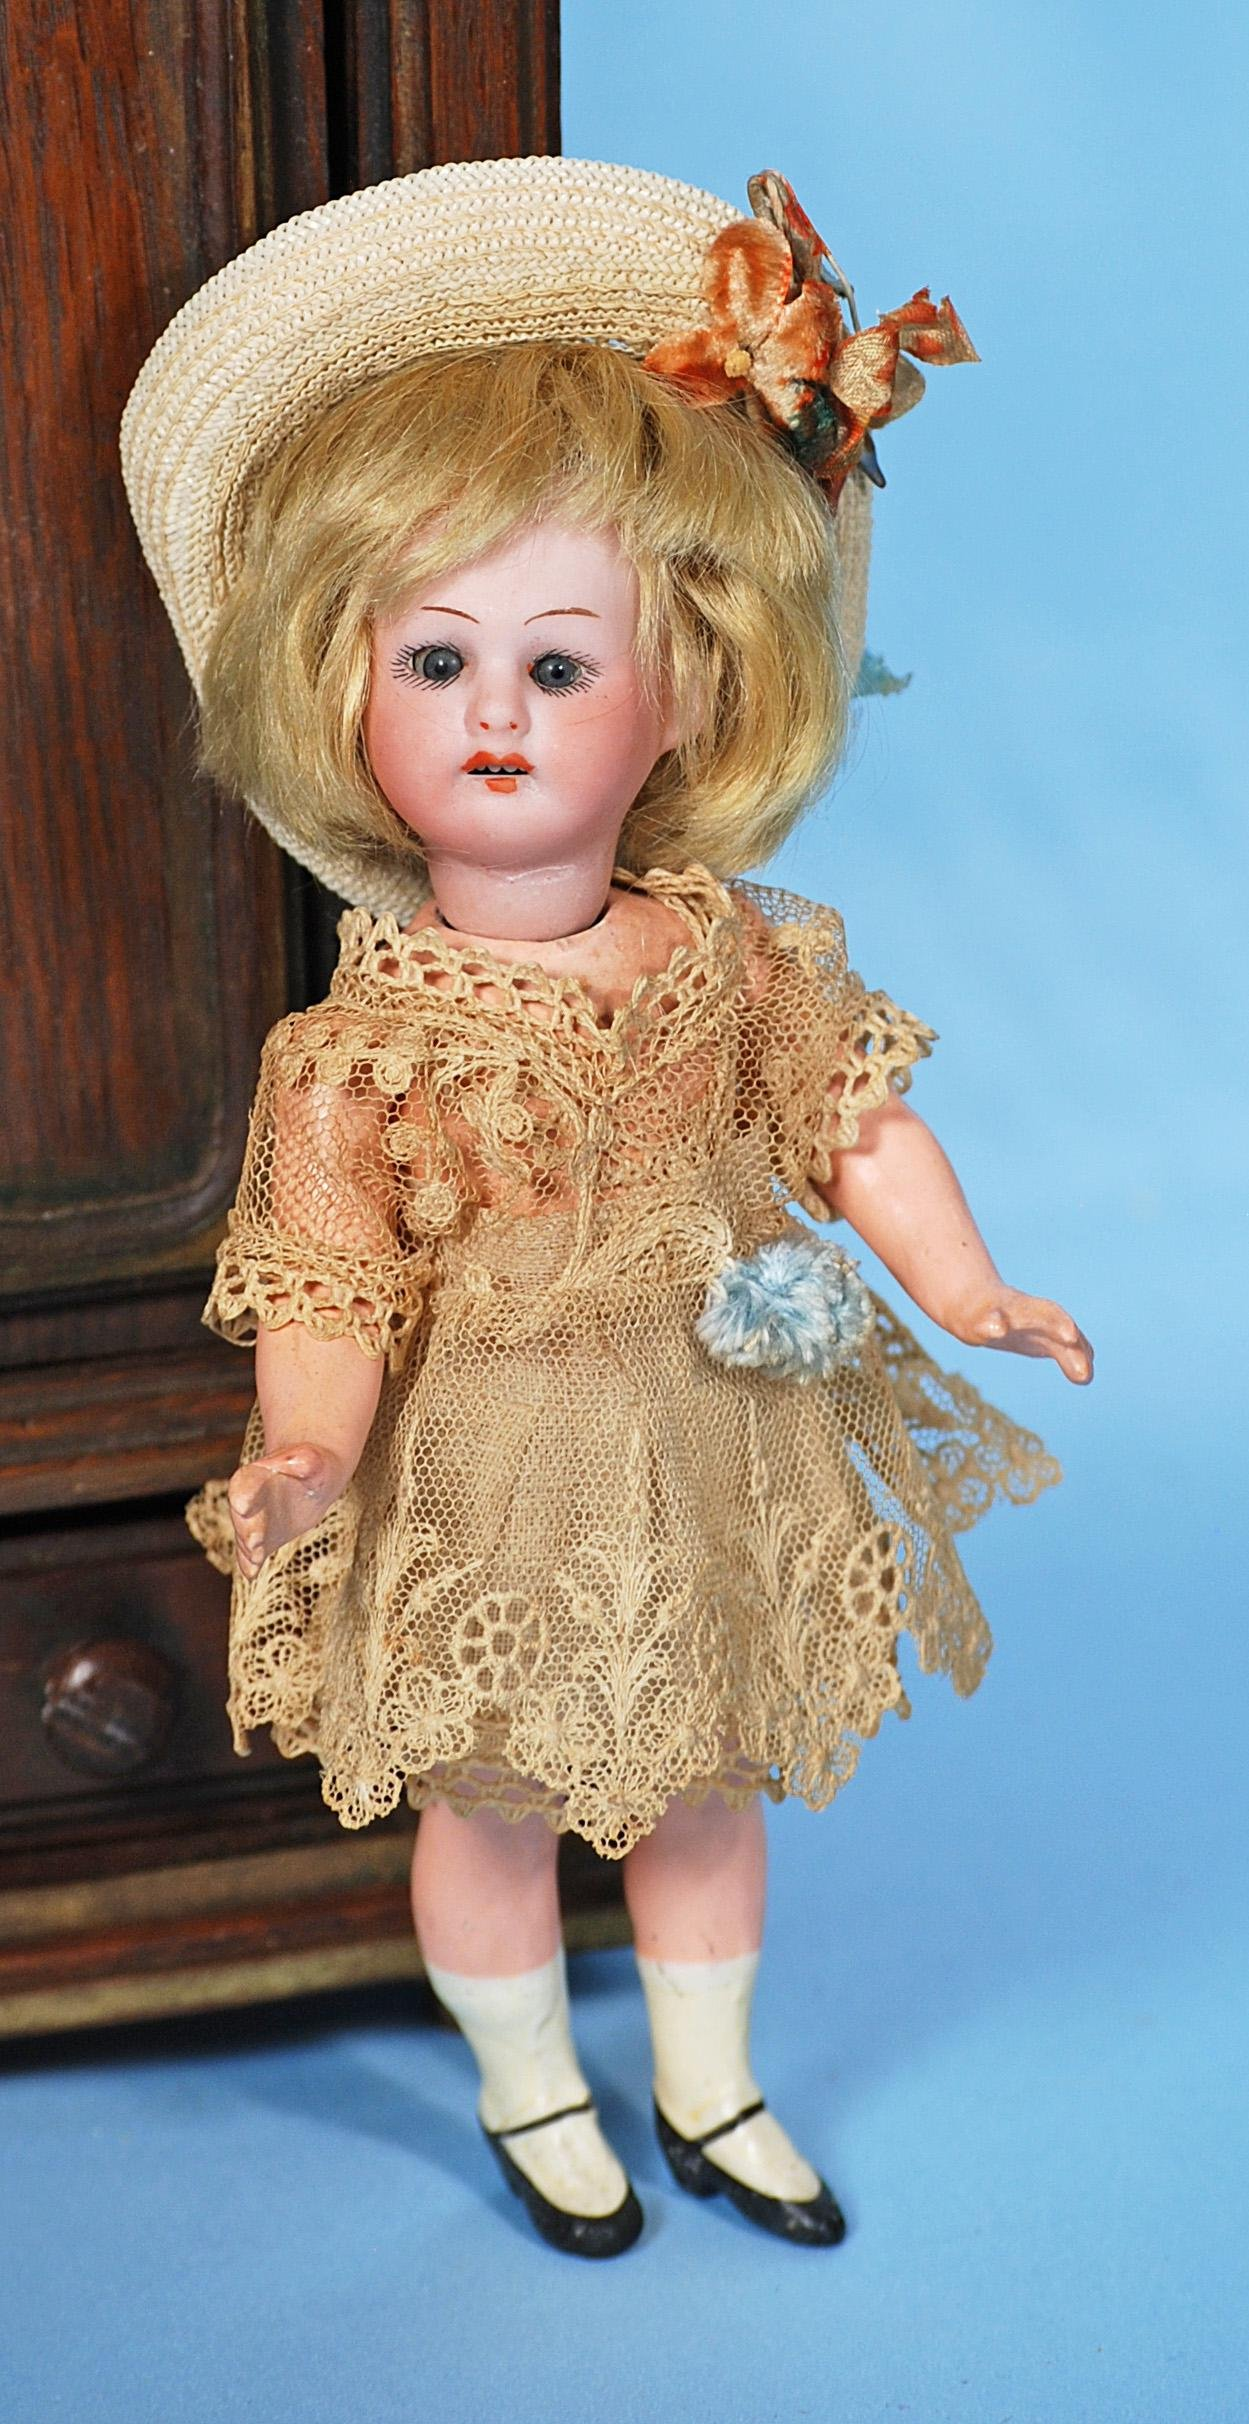 PETITE GERMAN BISQUE DOLL.  Marks: Made in Germany